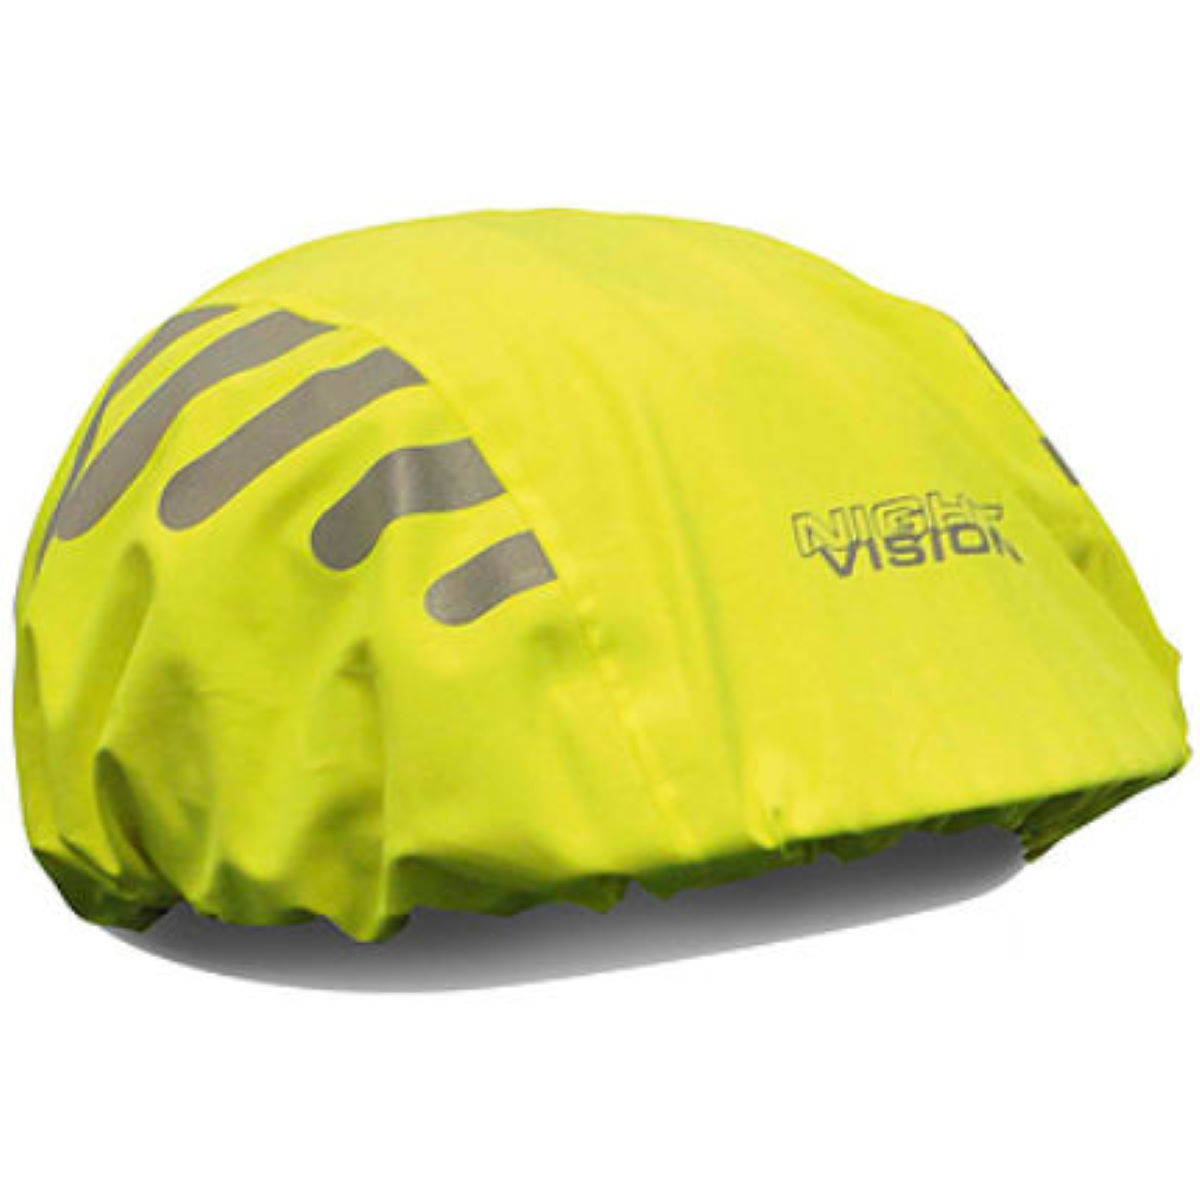 Altura Waterproof Helmet Cover AW14